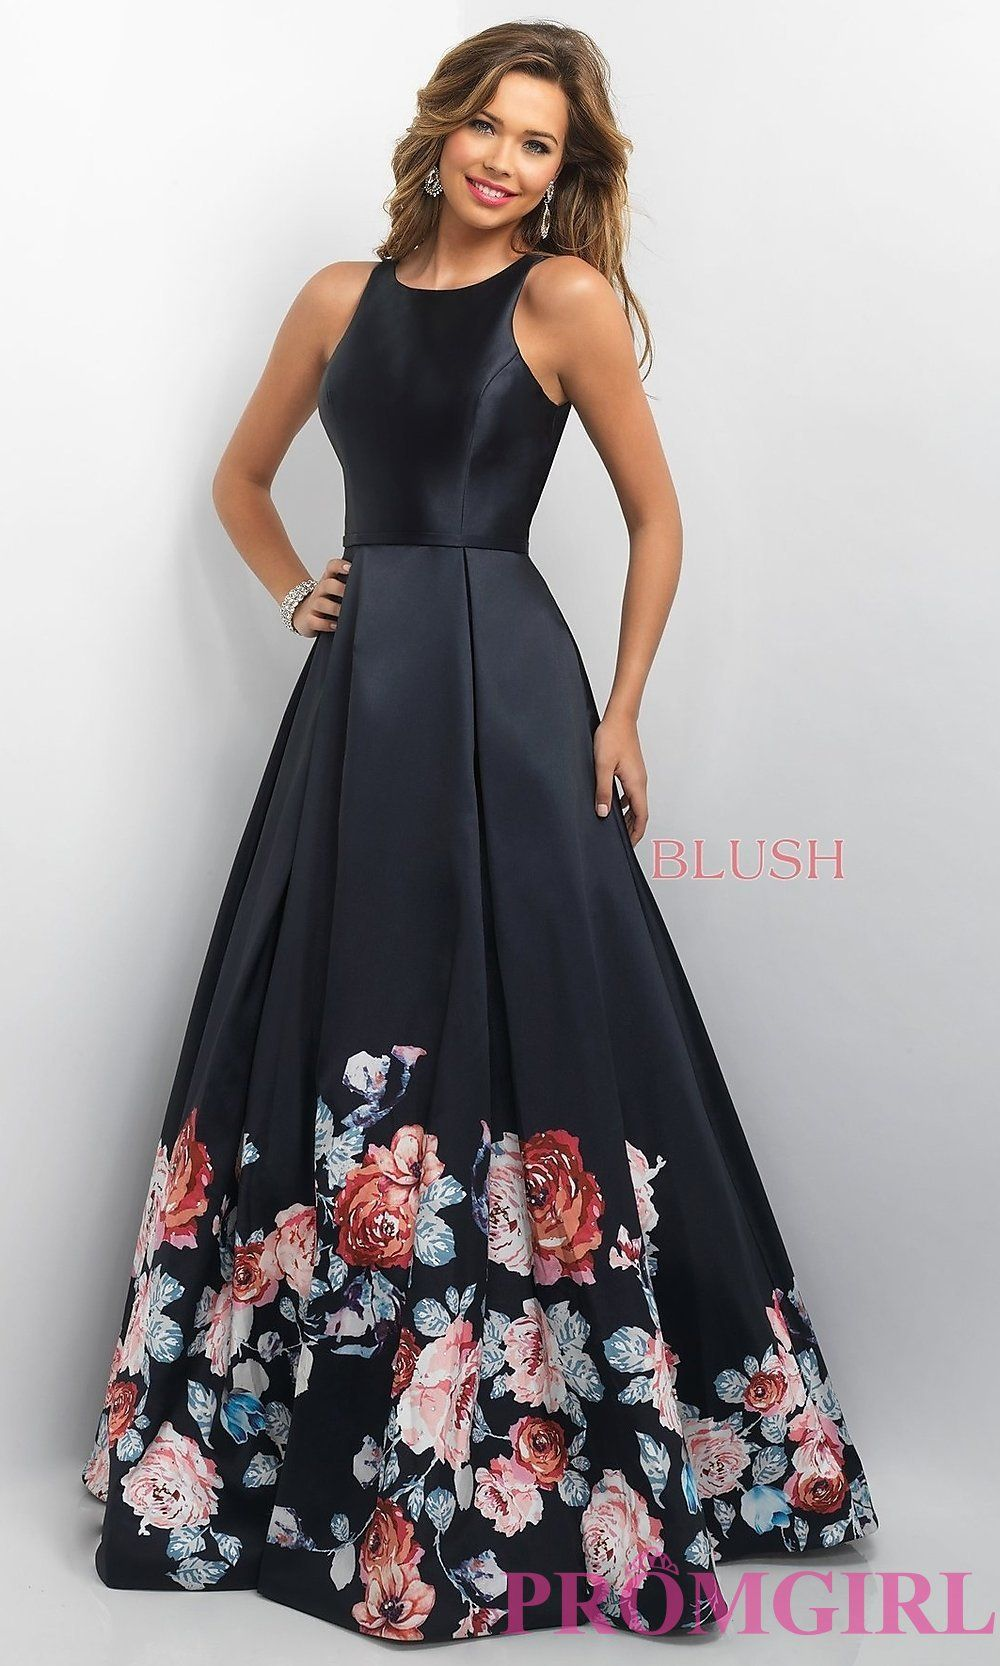 Floral-Print Long Prom Dress by Blush  3bb91dcf37fc